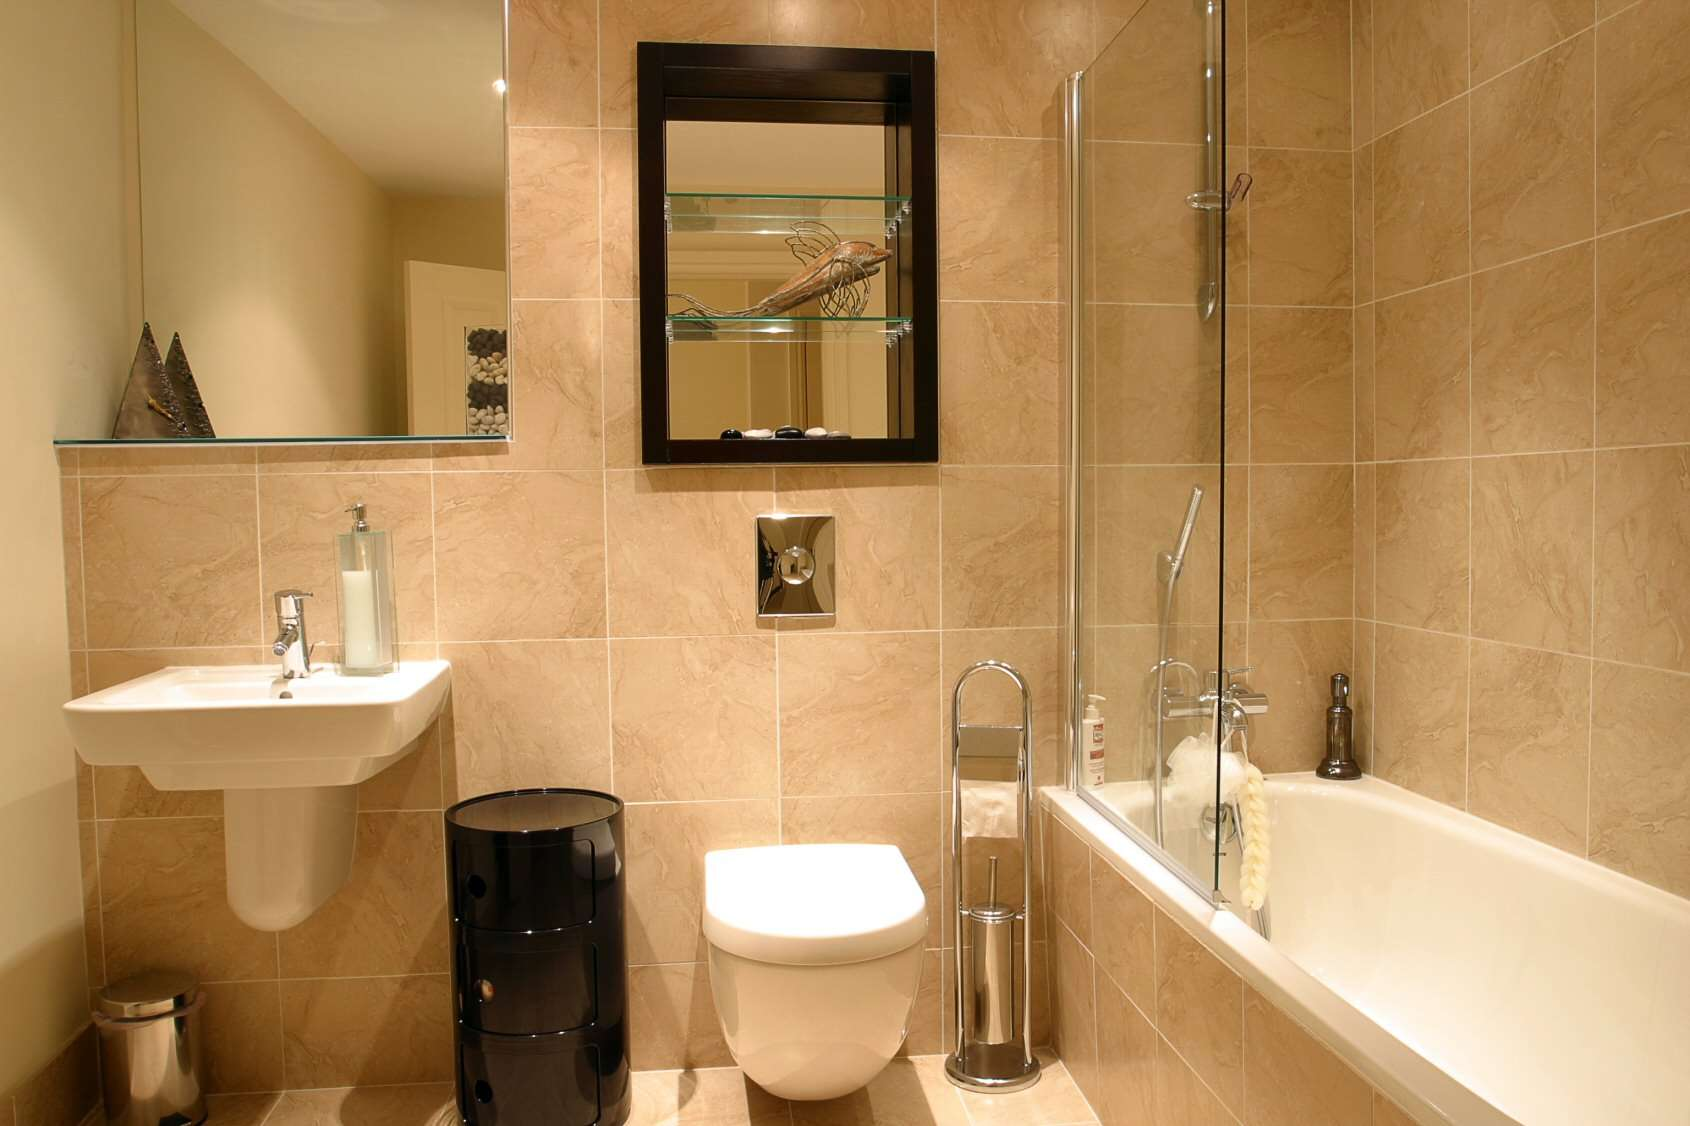 Bathroom Remodel Interior Design Industry Standard